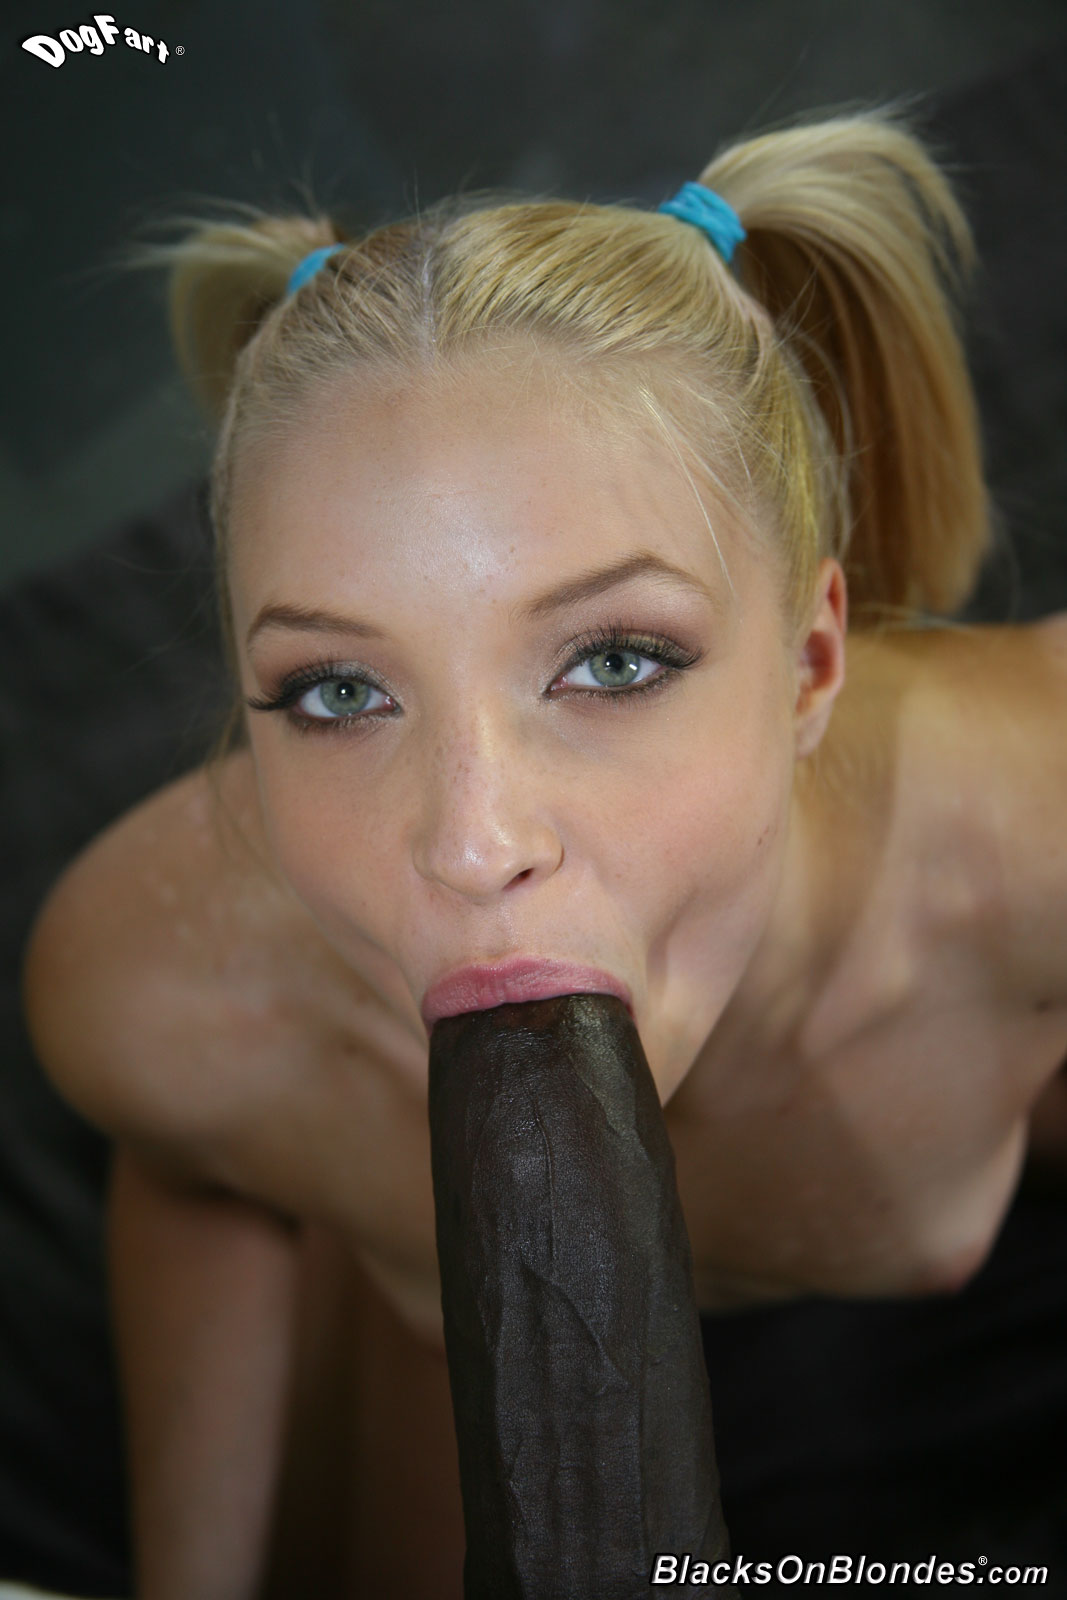 on the phone titfuck adult pictures luscious Private, Analsex, Analslut, Bbc, Bigcock, Blanchebradburry, Blonde, Bmww, Cockinass, Feet, Hot, Interracial, Interracial, Interracialsex, Legs, Onherside, Wwbm